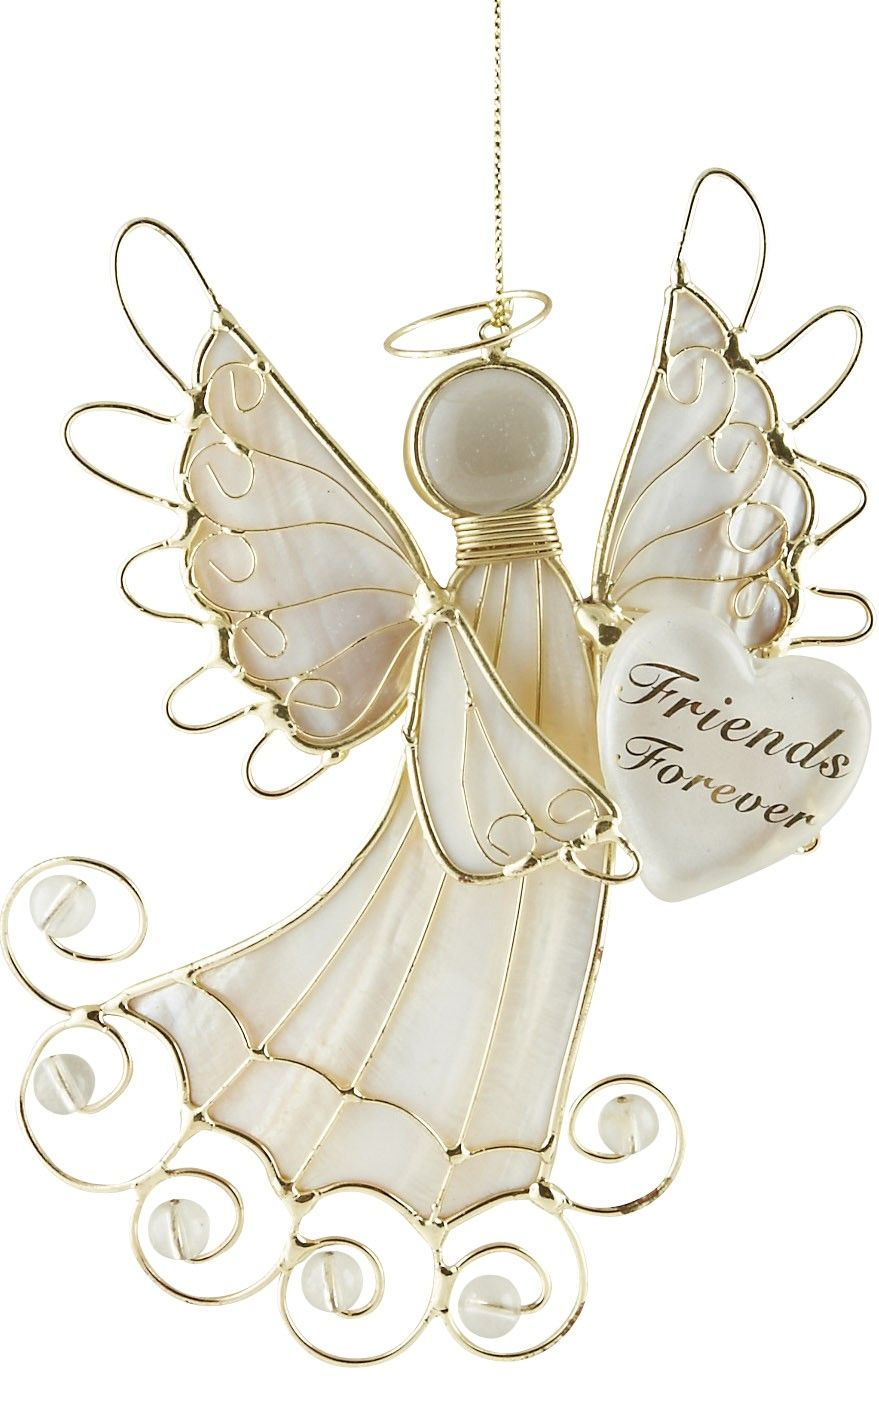 Share this lovely Christmas angel ornament with someone special ...